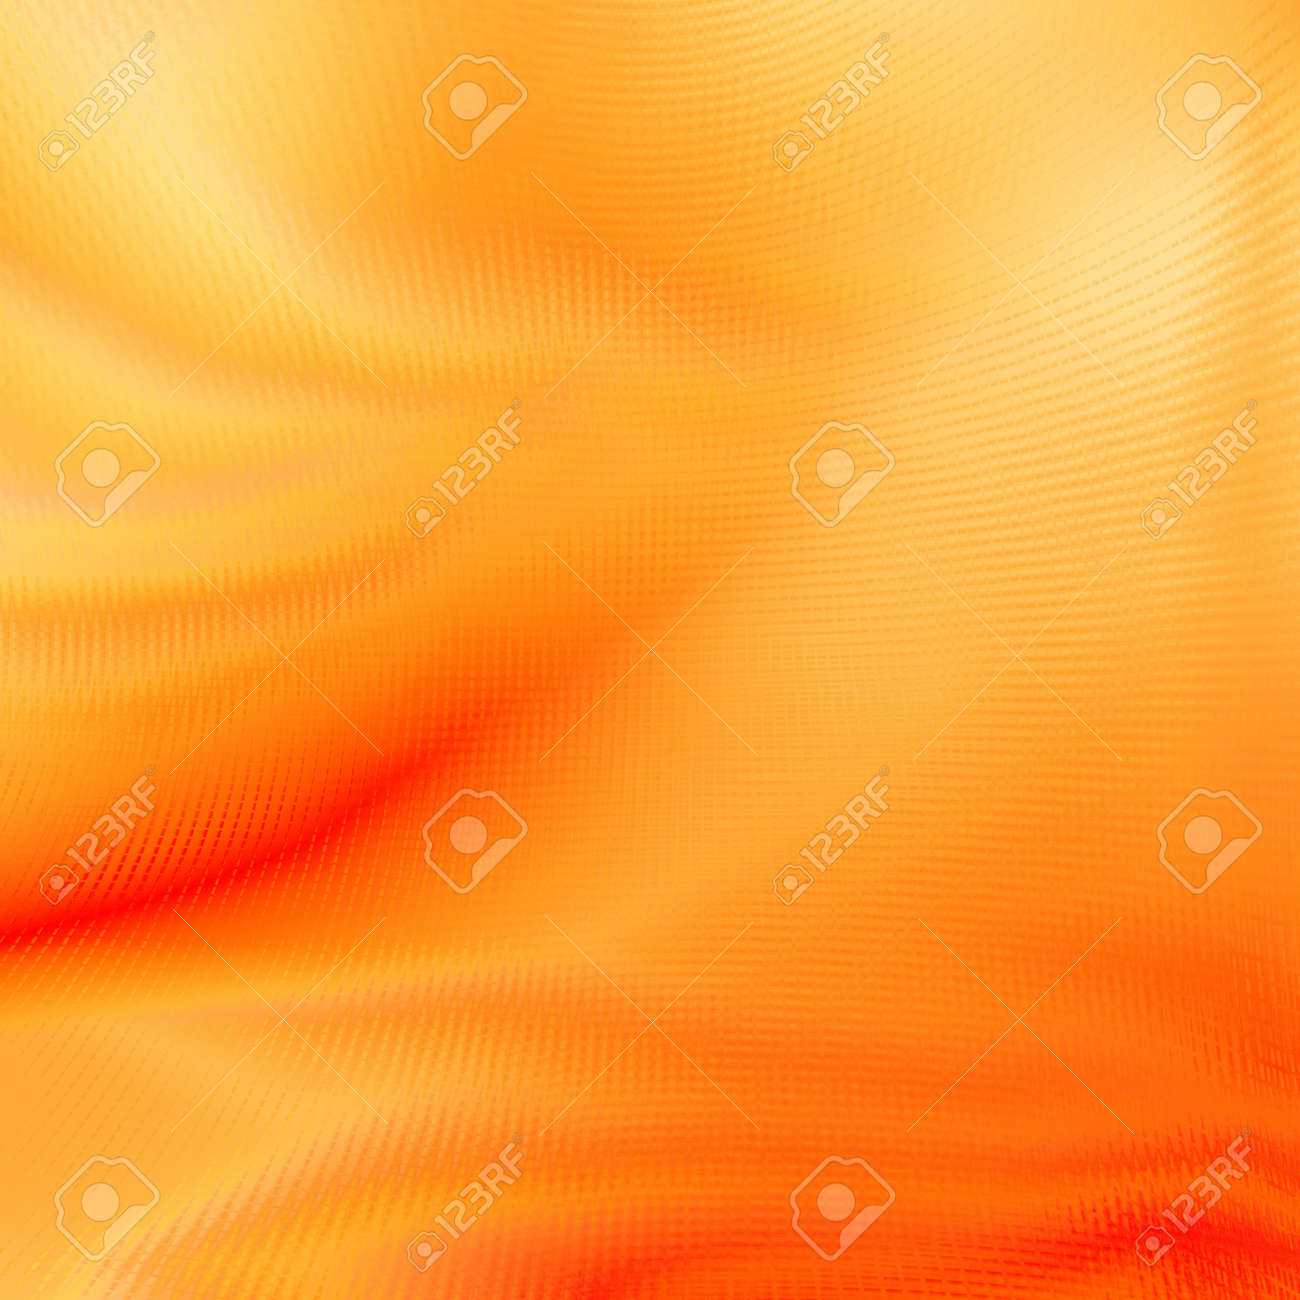 yellow red abstract background with delicate grid texture Stock Photo - 16041061